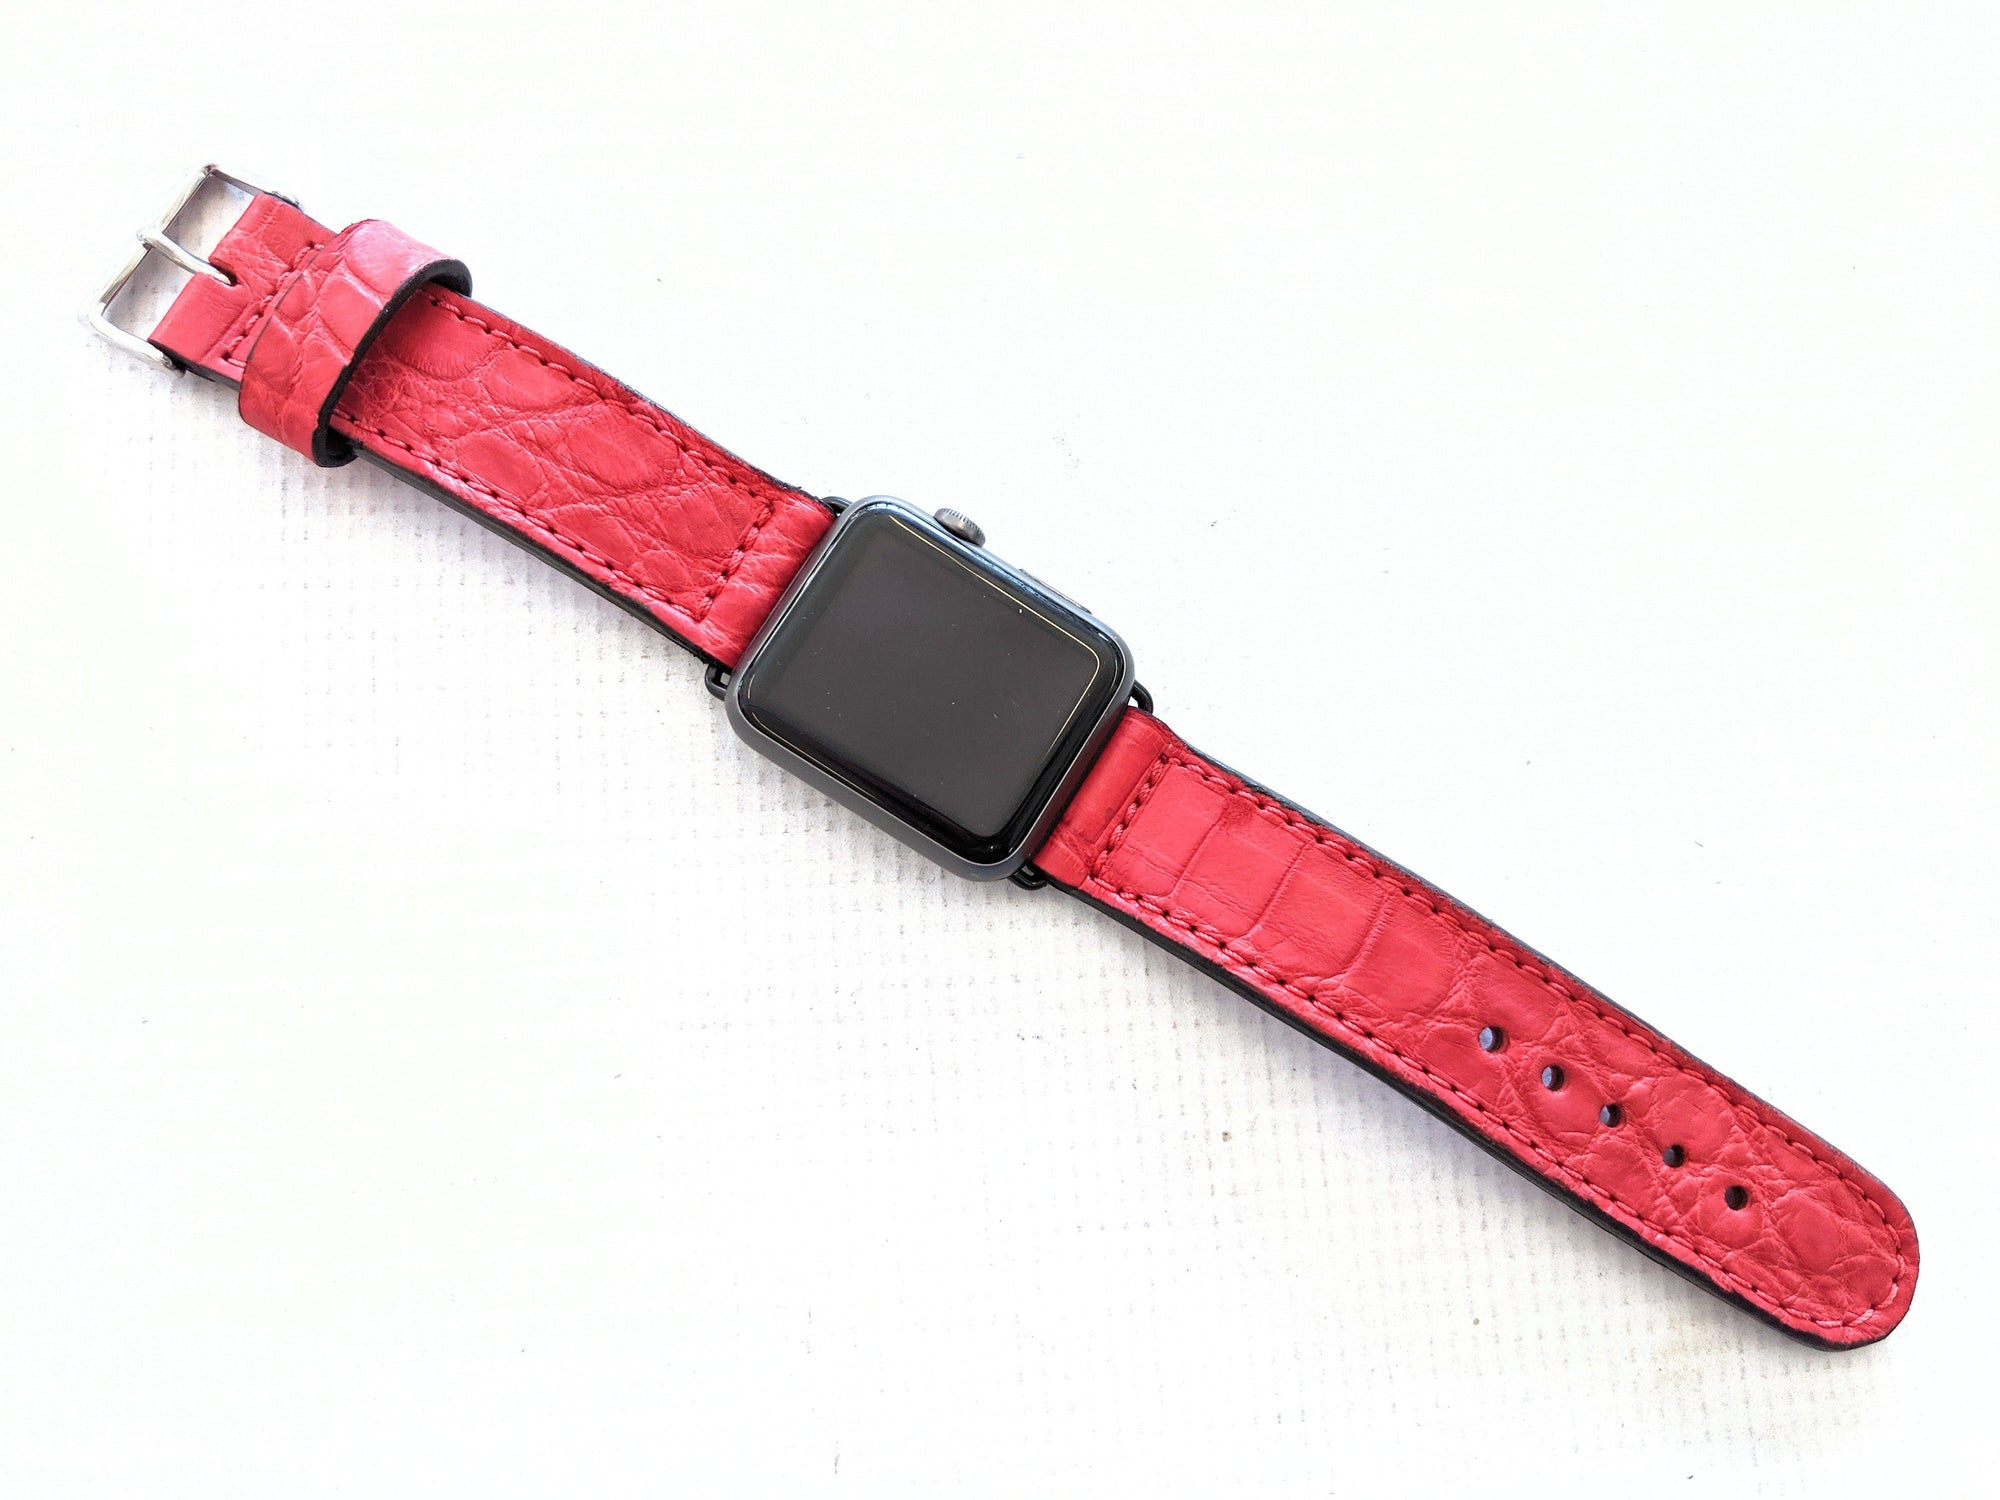 42/44mm Apple Watch Band - Red Alligator - Anvil Customs